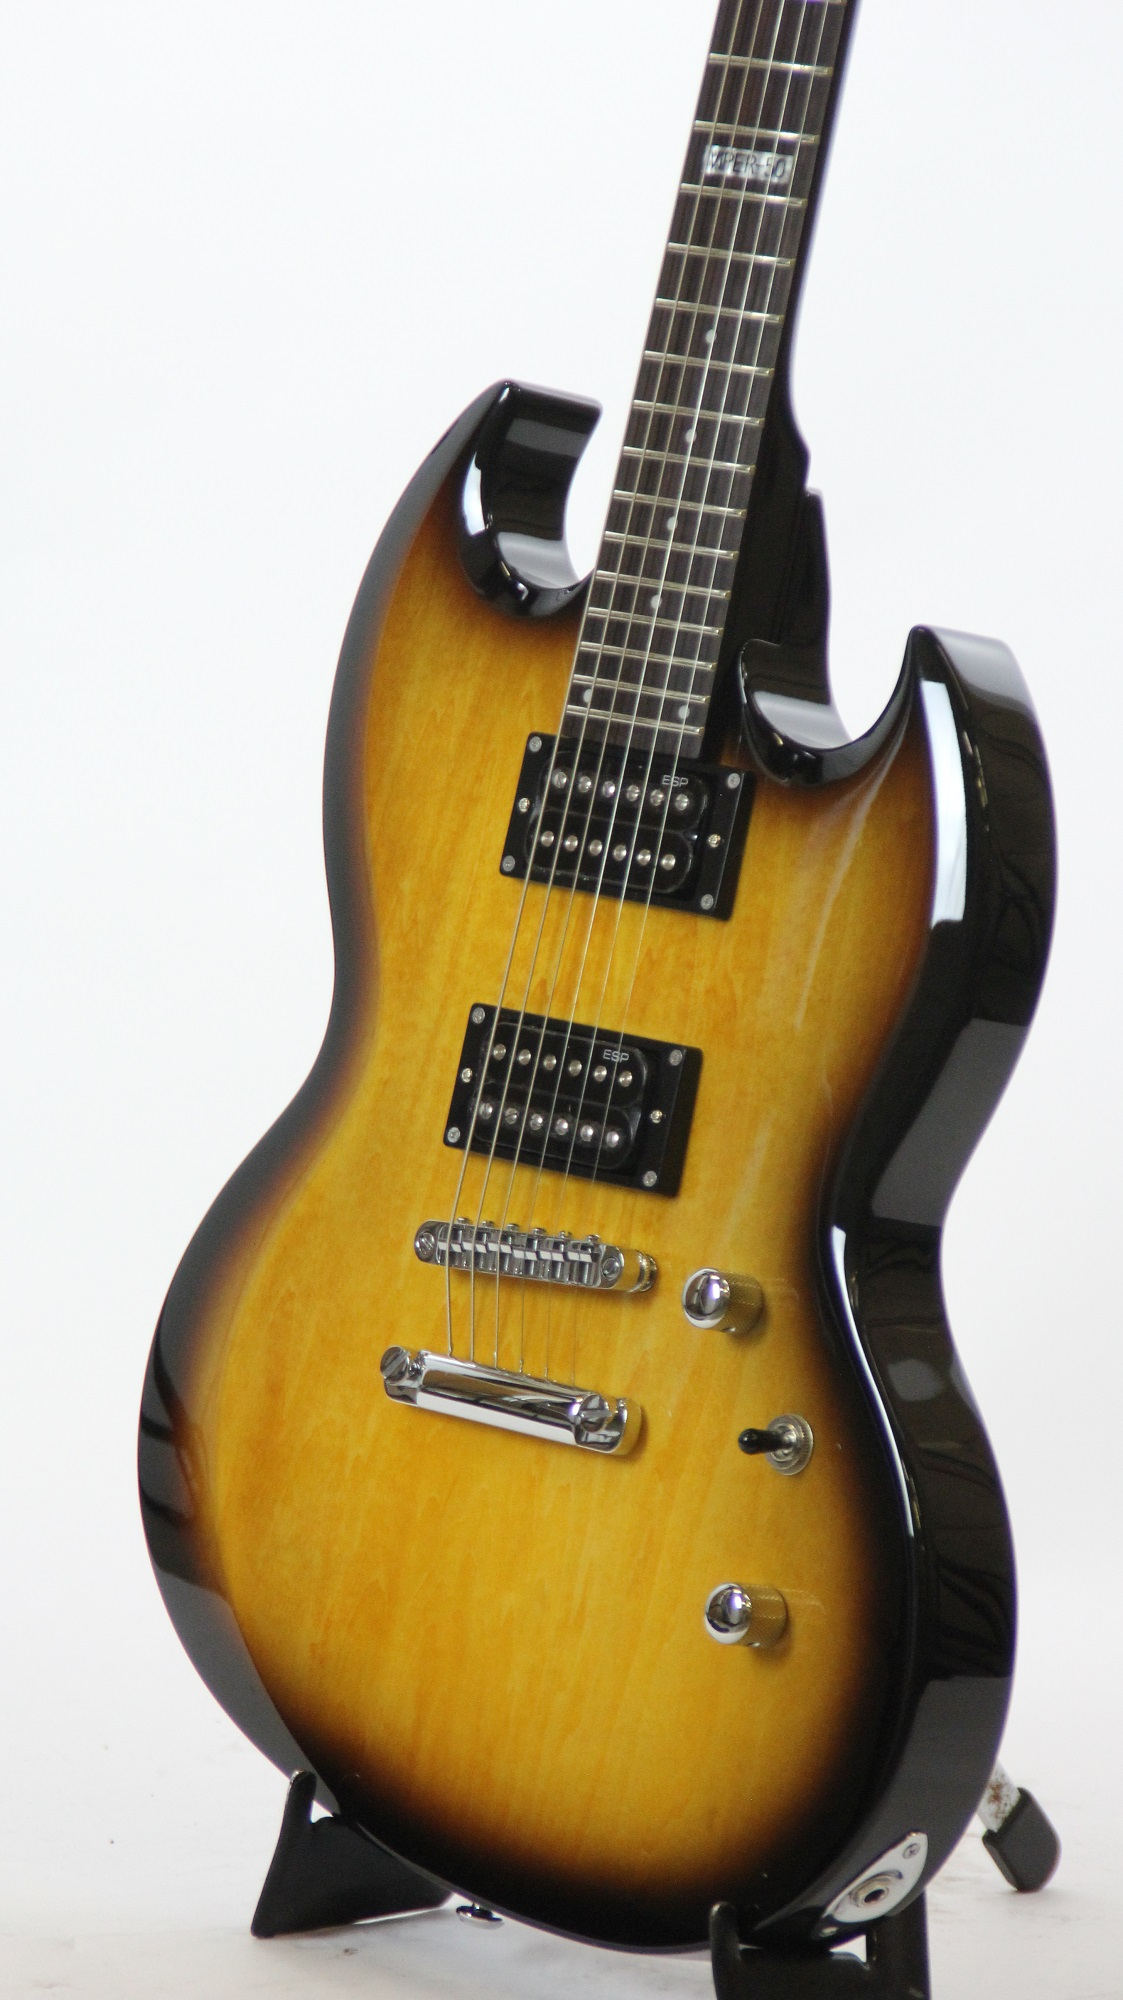 esp ltd viper 50 2 tone burst sample prototype electric guitar 2156 6. Black Bedroom Furniture Sets. Home Design Ideas